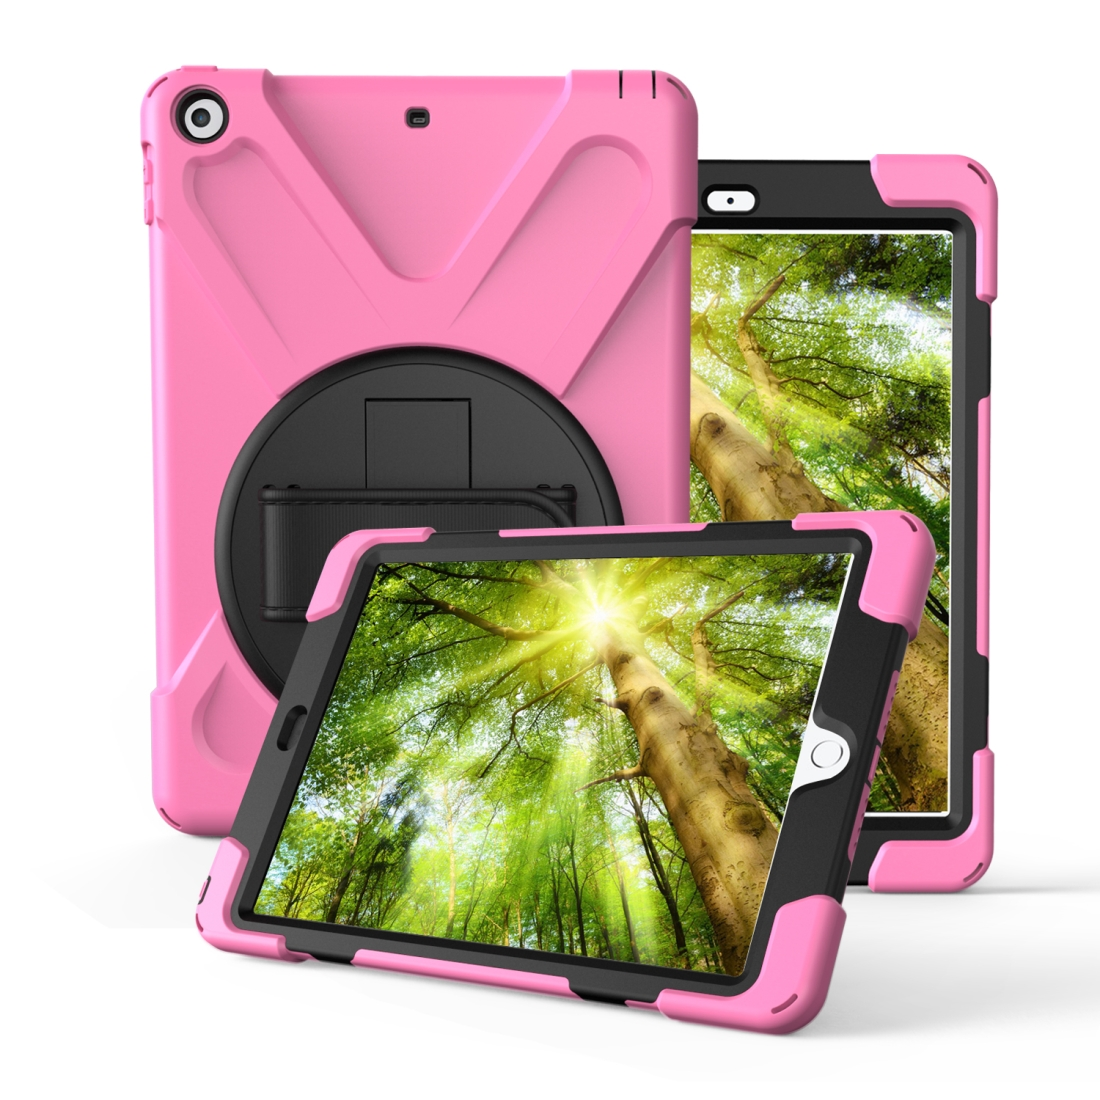 iPad Air 3 Case (10.5 Inch) Rotating Protective Case with Hand-strap (Pink)